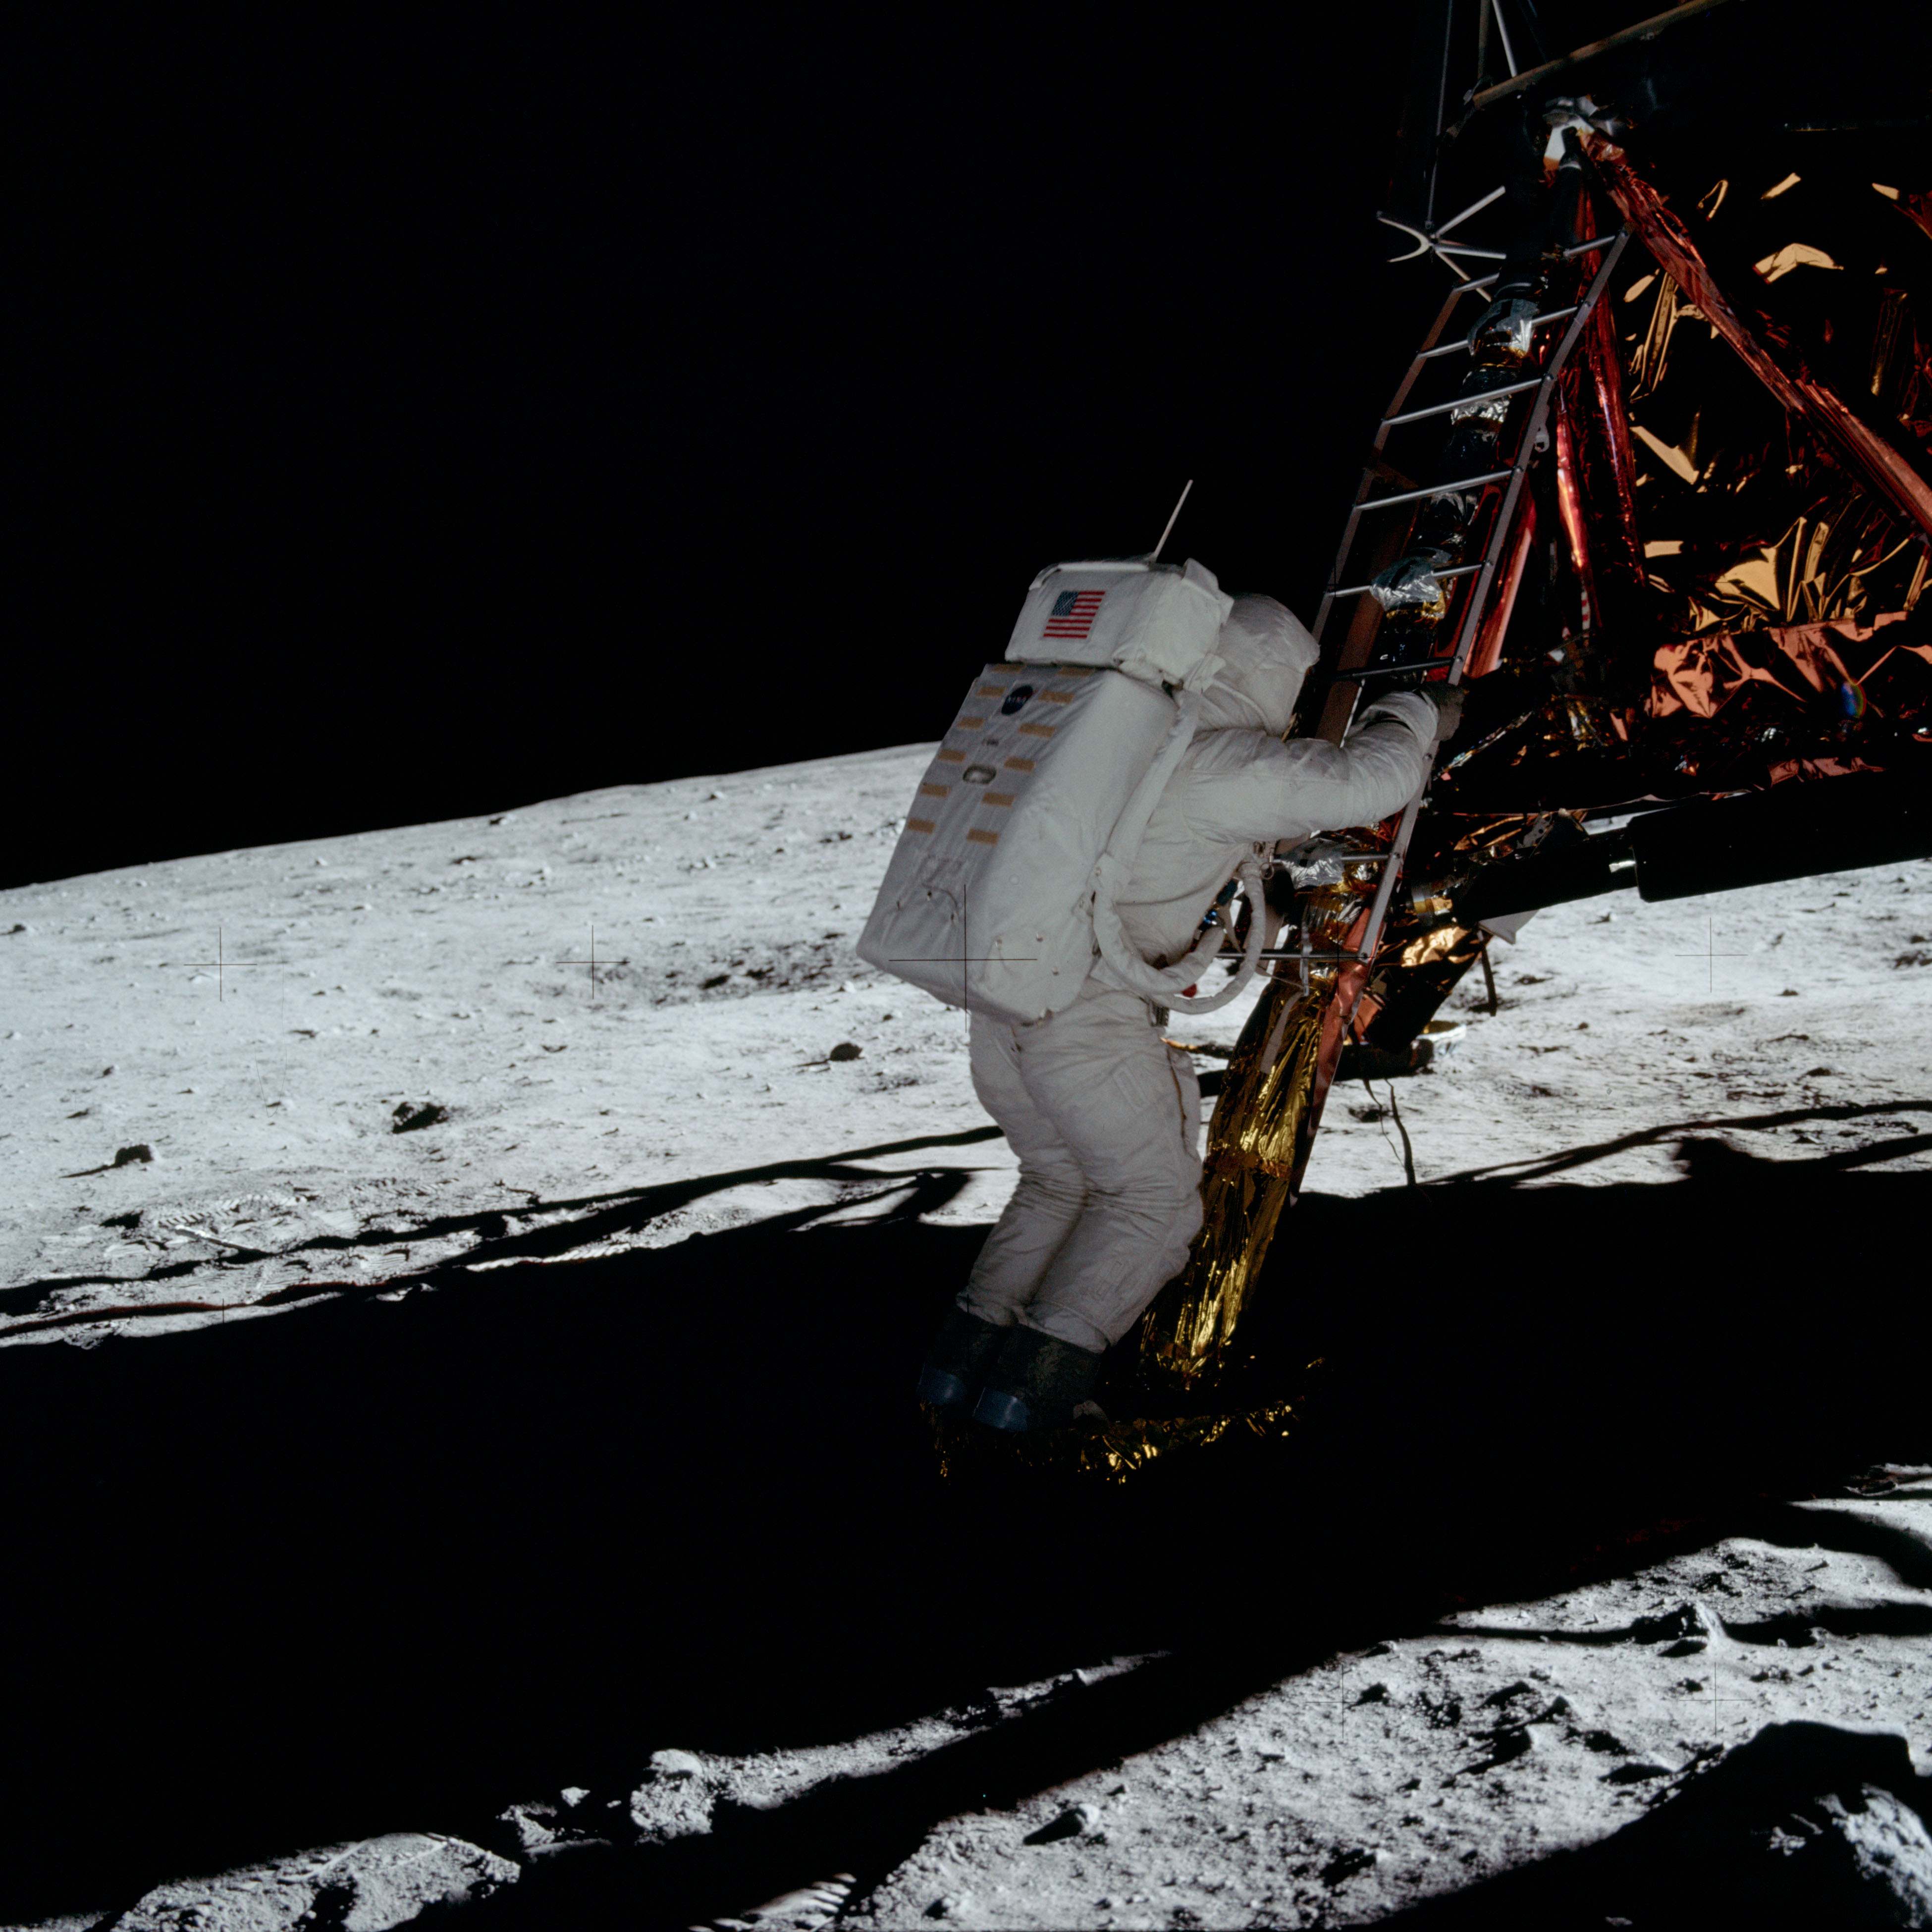 50 Years Ago: One Small Step, One Giant Leap